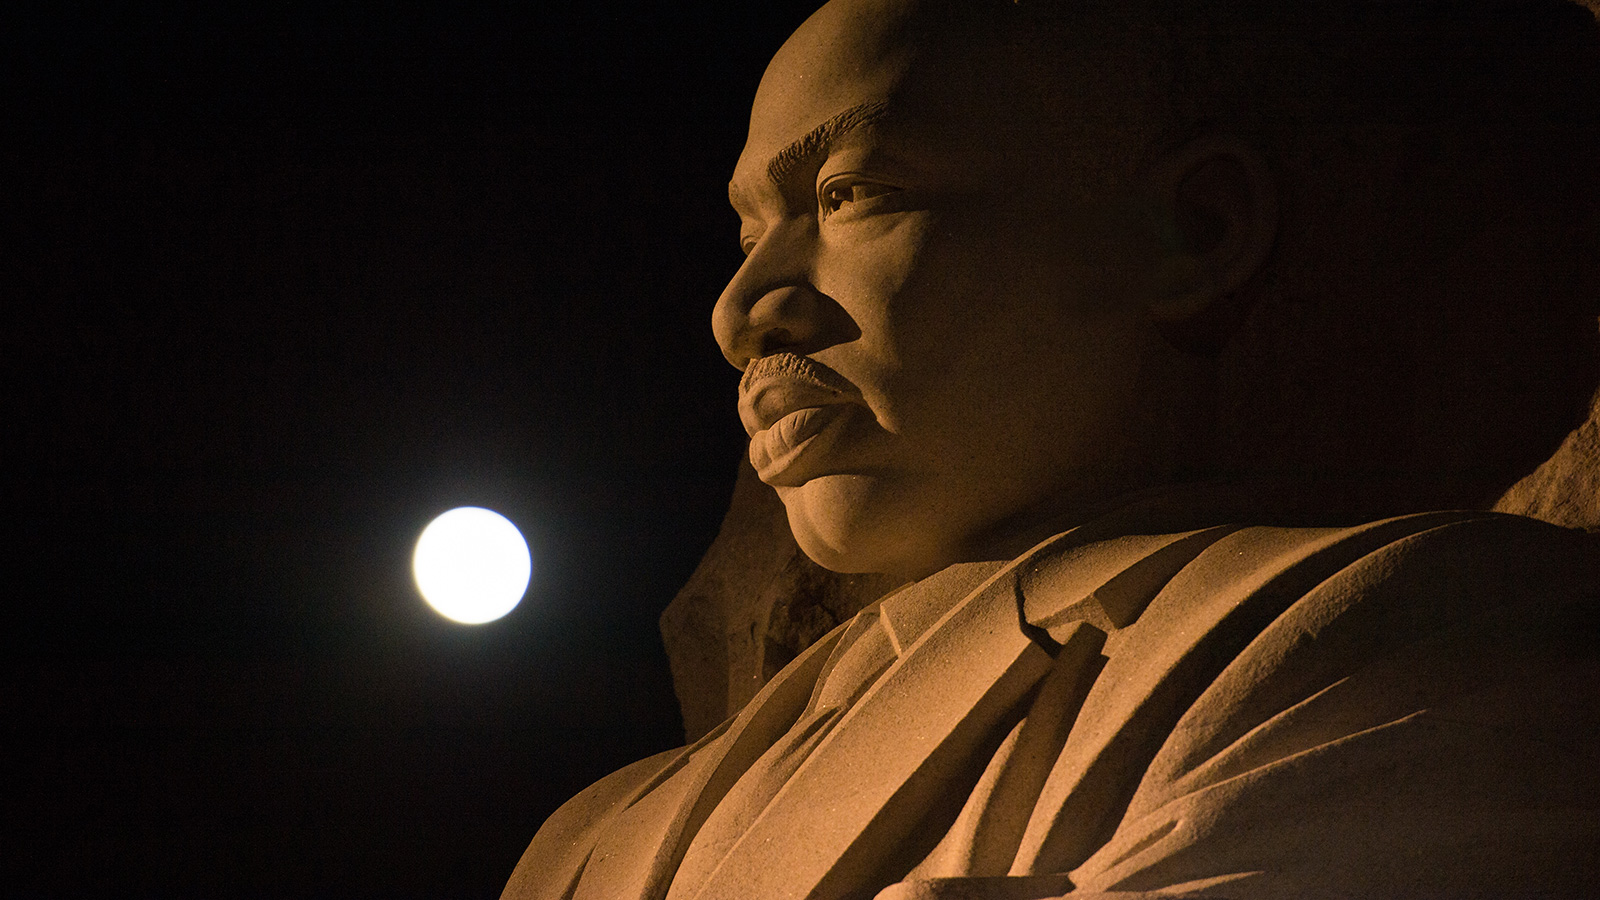 Full Moon over giant statue of the Martin Luther King Jr.